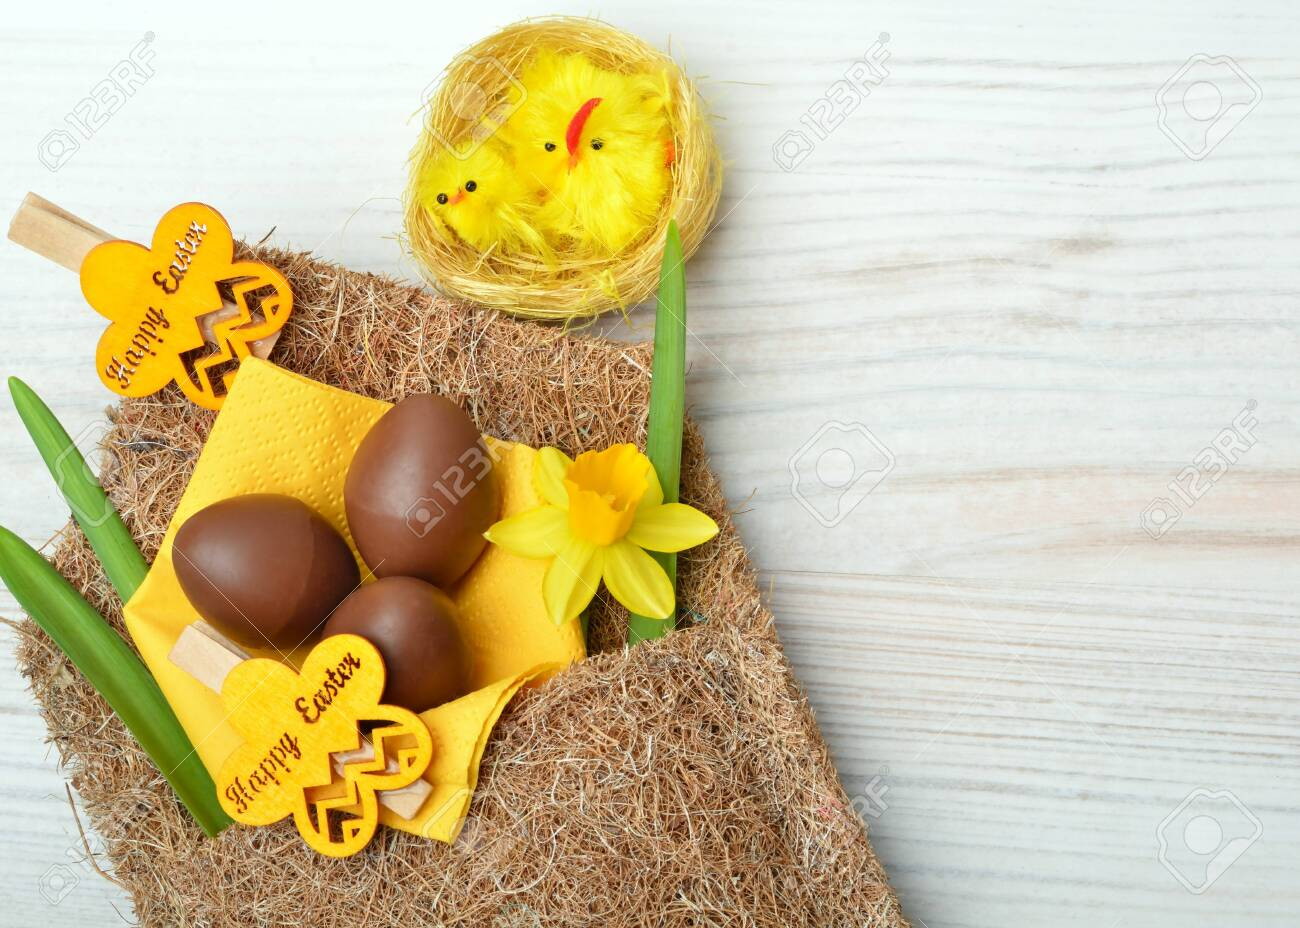 Easter decoration and fresh spring narcissus flowers on wooden background. - 121736040